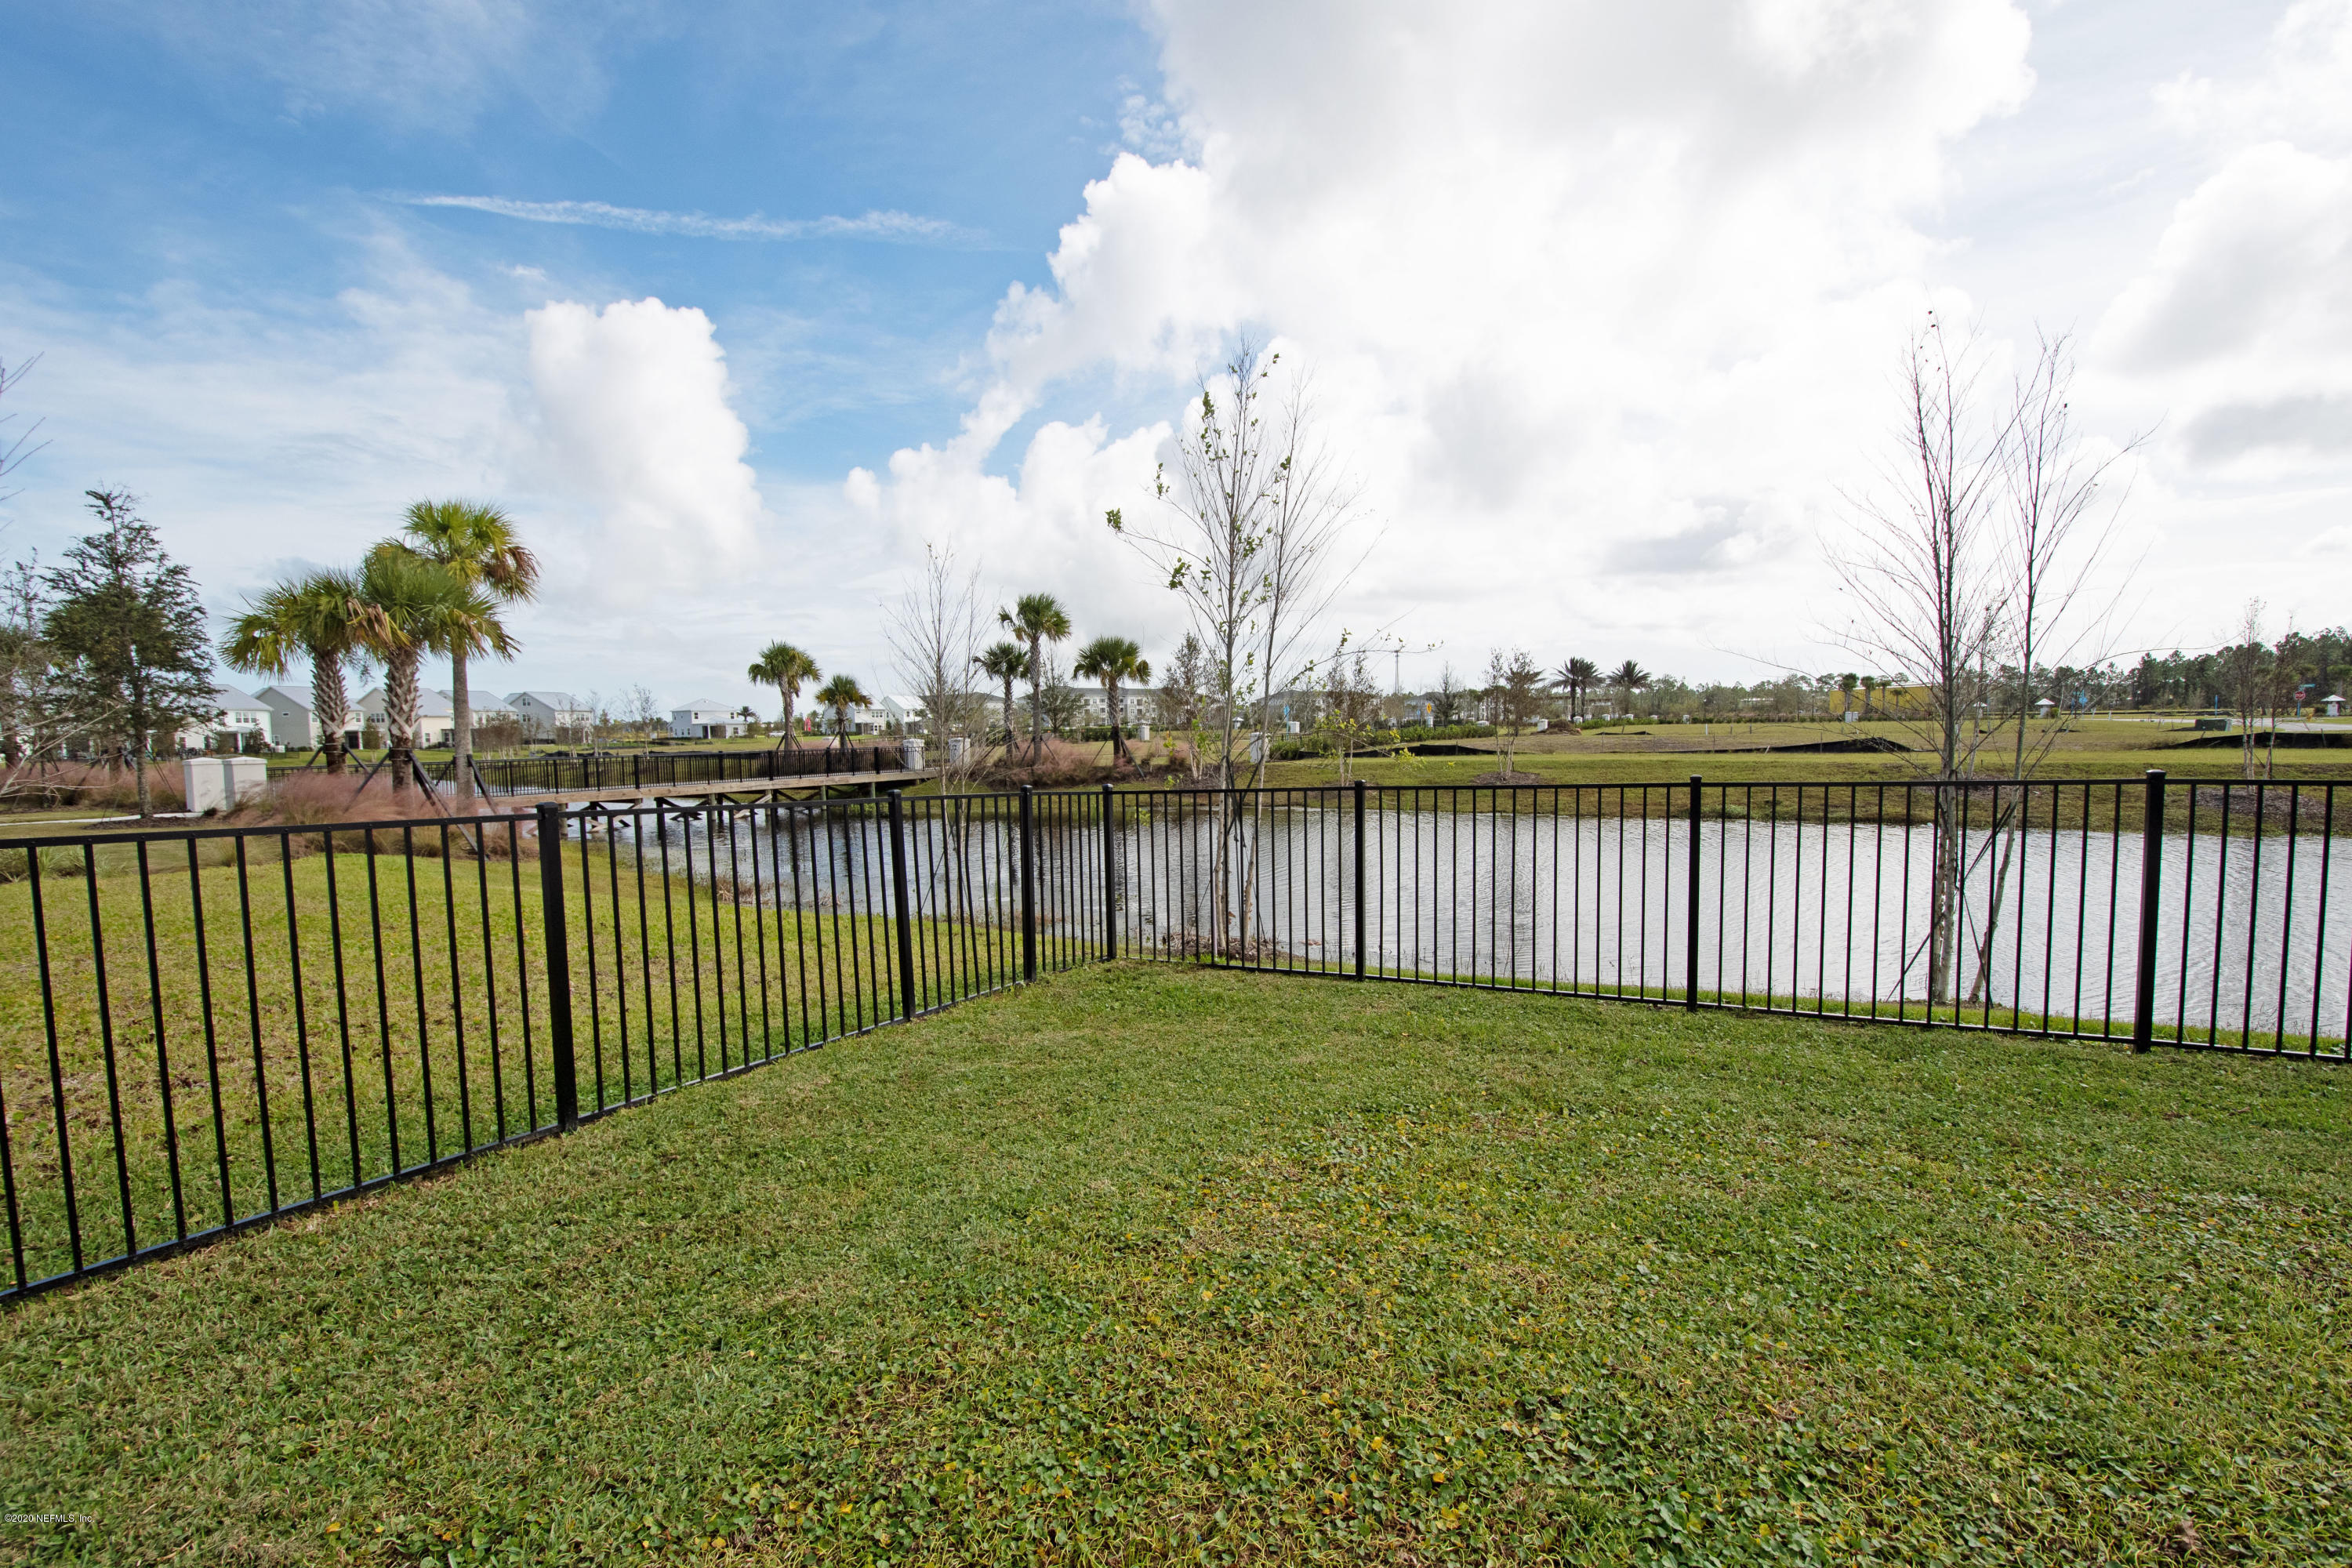 275 CLIFTON BAY, ST JOHNS, FLORIDA 32259, 3 Bedrooms Bedrooms, ,2 BathroomsBathrooms,Residential,For sale,CLIFTON BAY,1081783